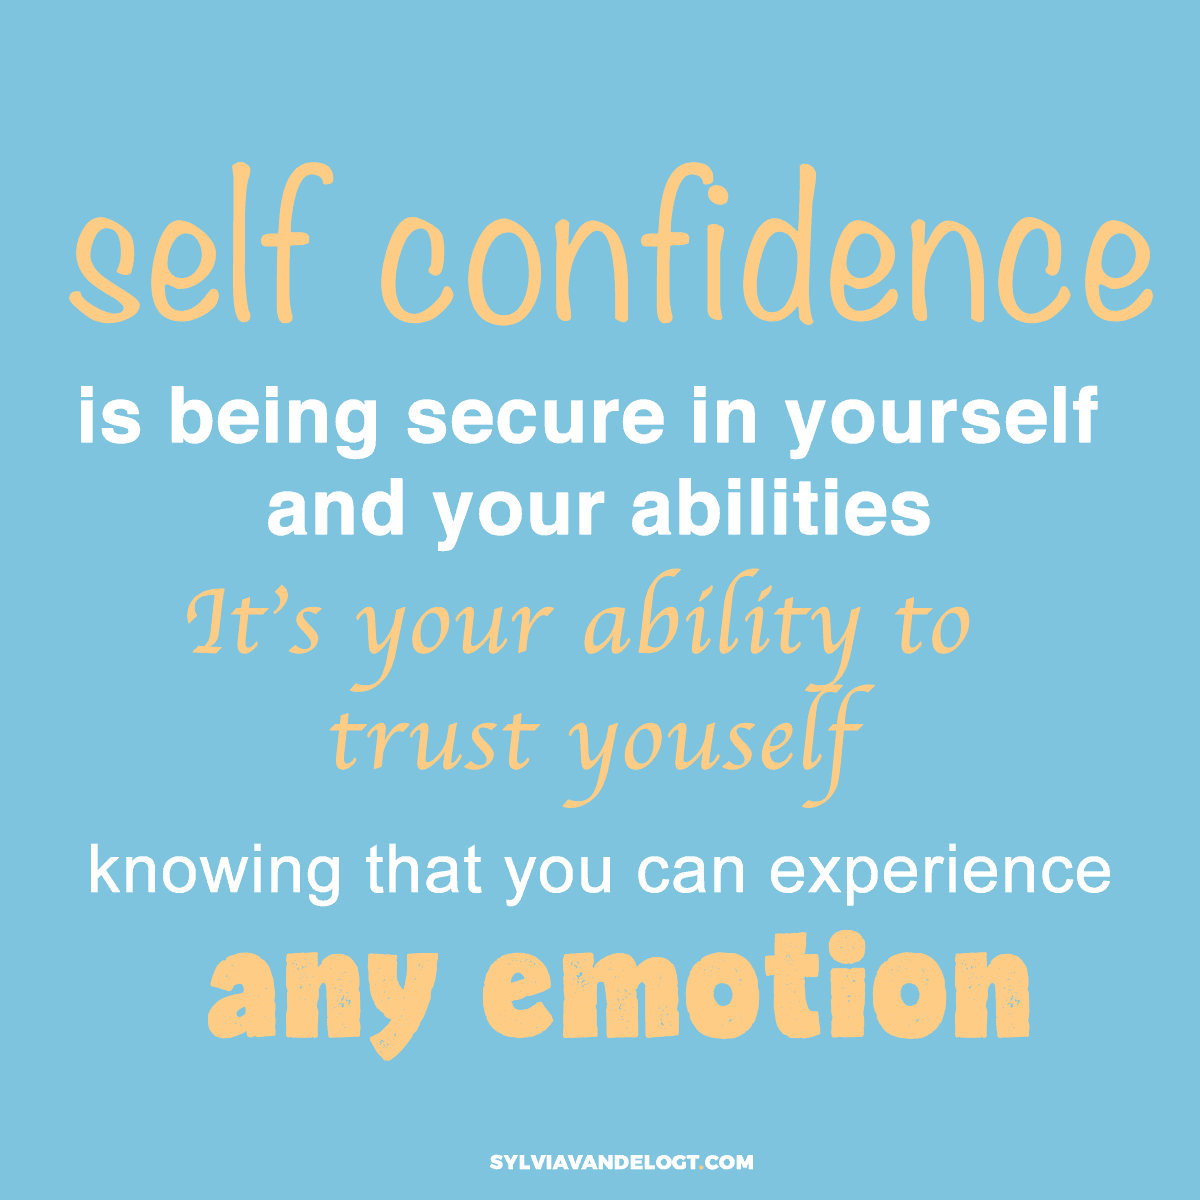 how to build self confidence - Learn the ONE THING you need to master to get it   40plusstyle.com